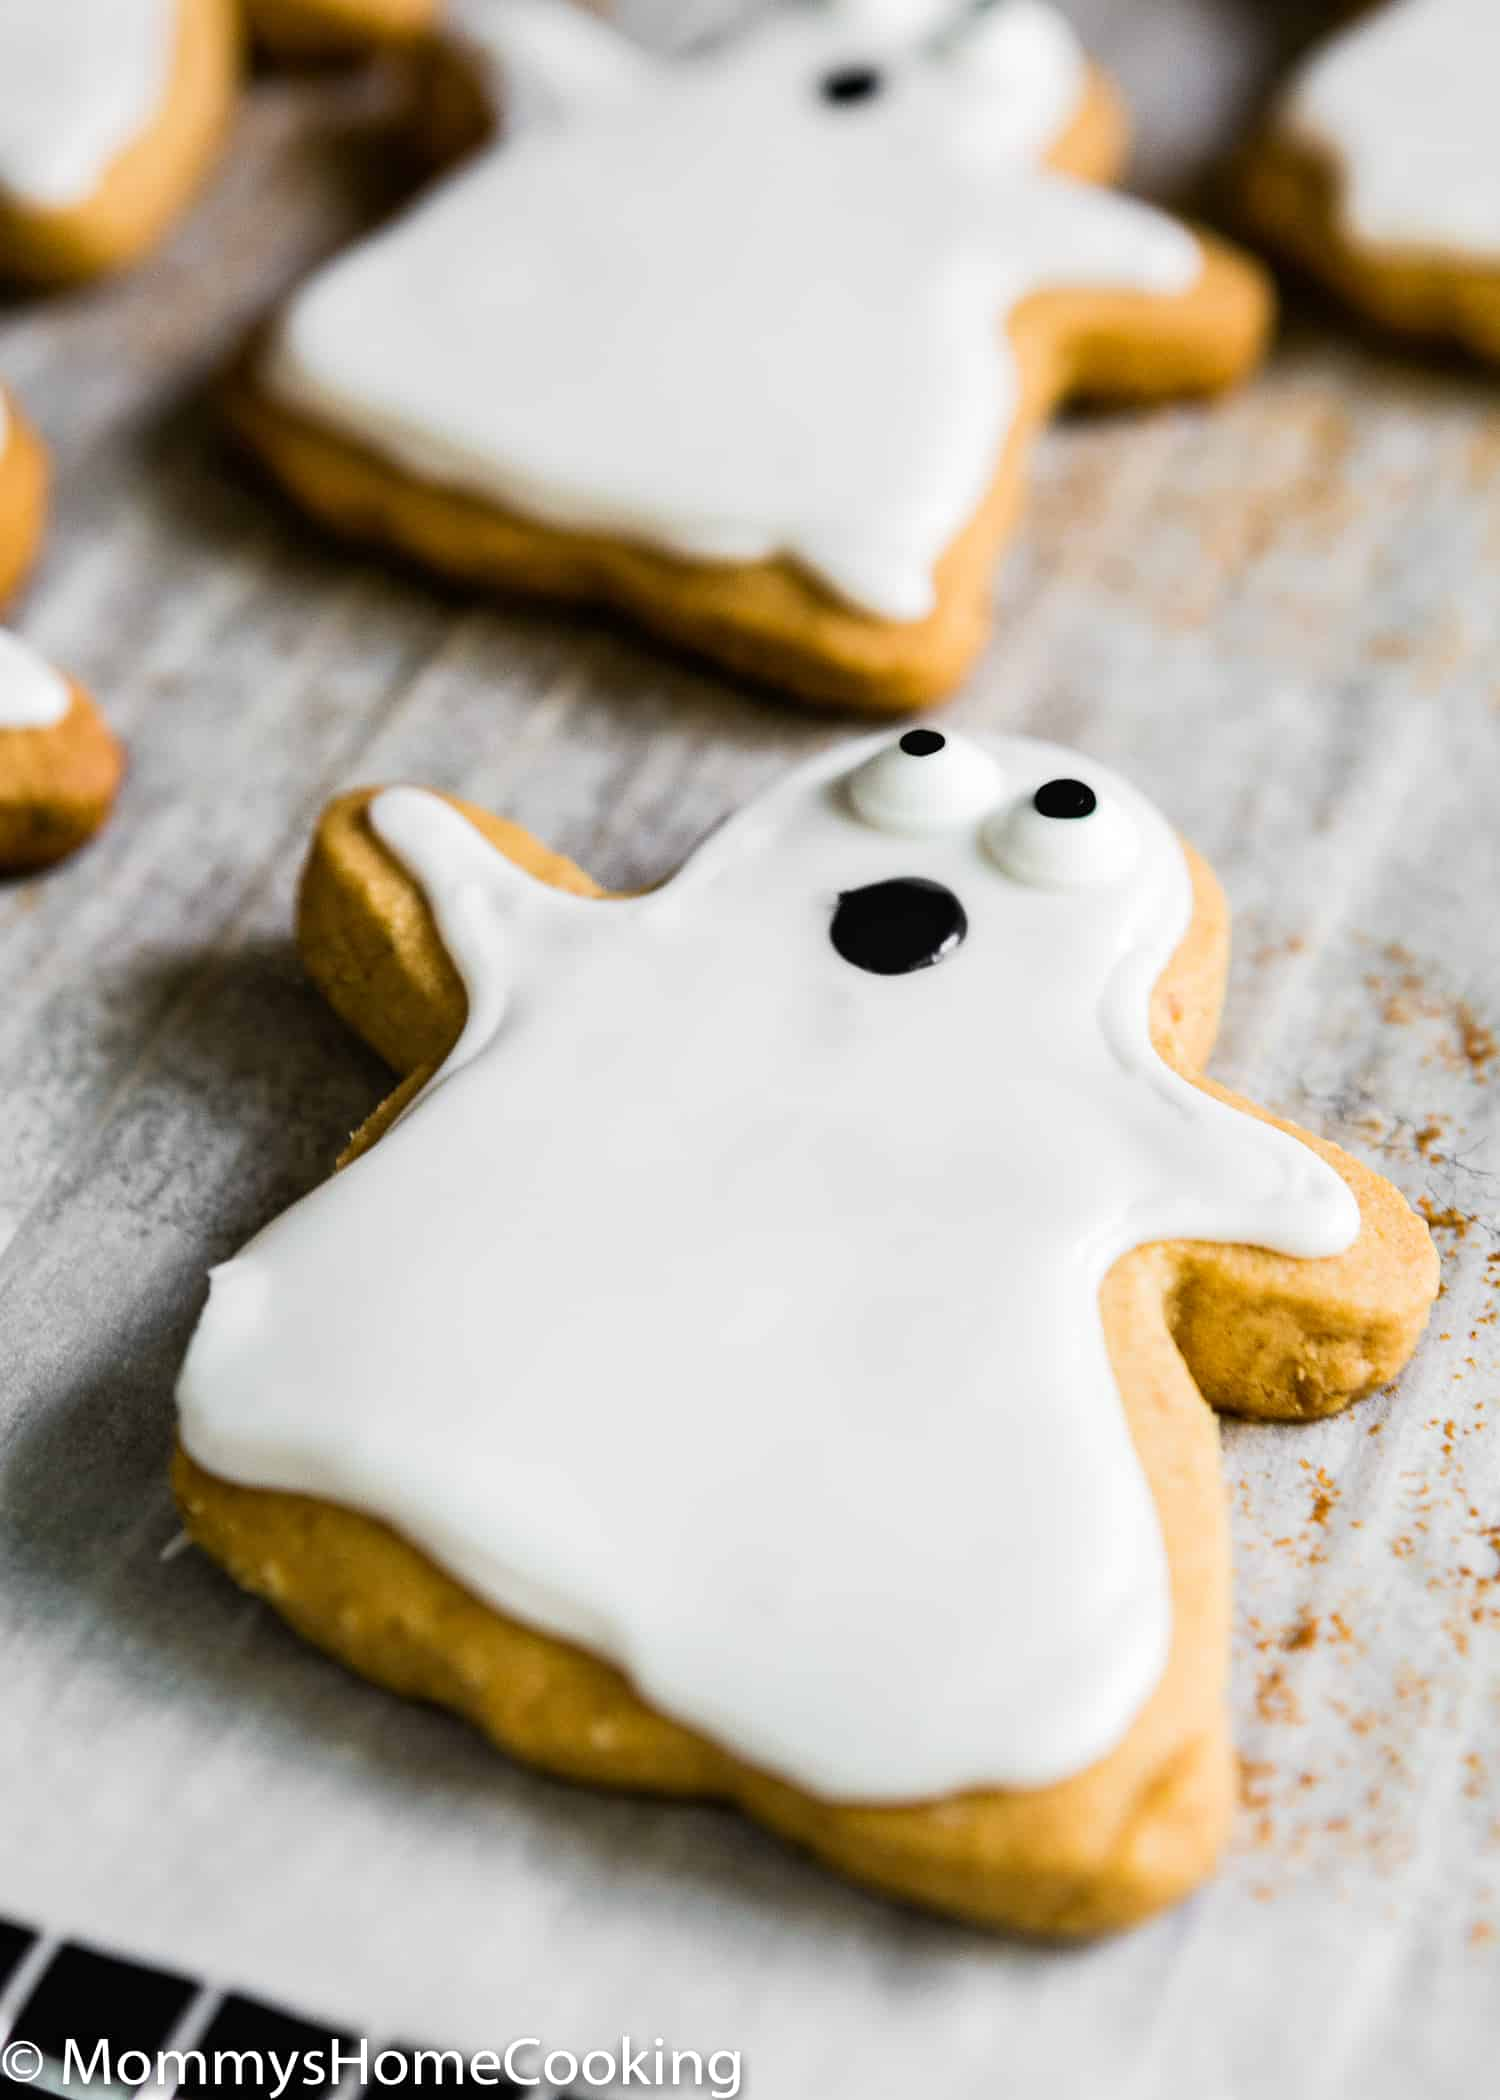 These 3-Ingredient Eggless Peanut Butter Halloween Cookies are easy to make and delicious! These cookies really do melt in your mouth. A peanut butter lover's heaven!  https://mommyshomecooking.com